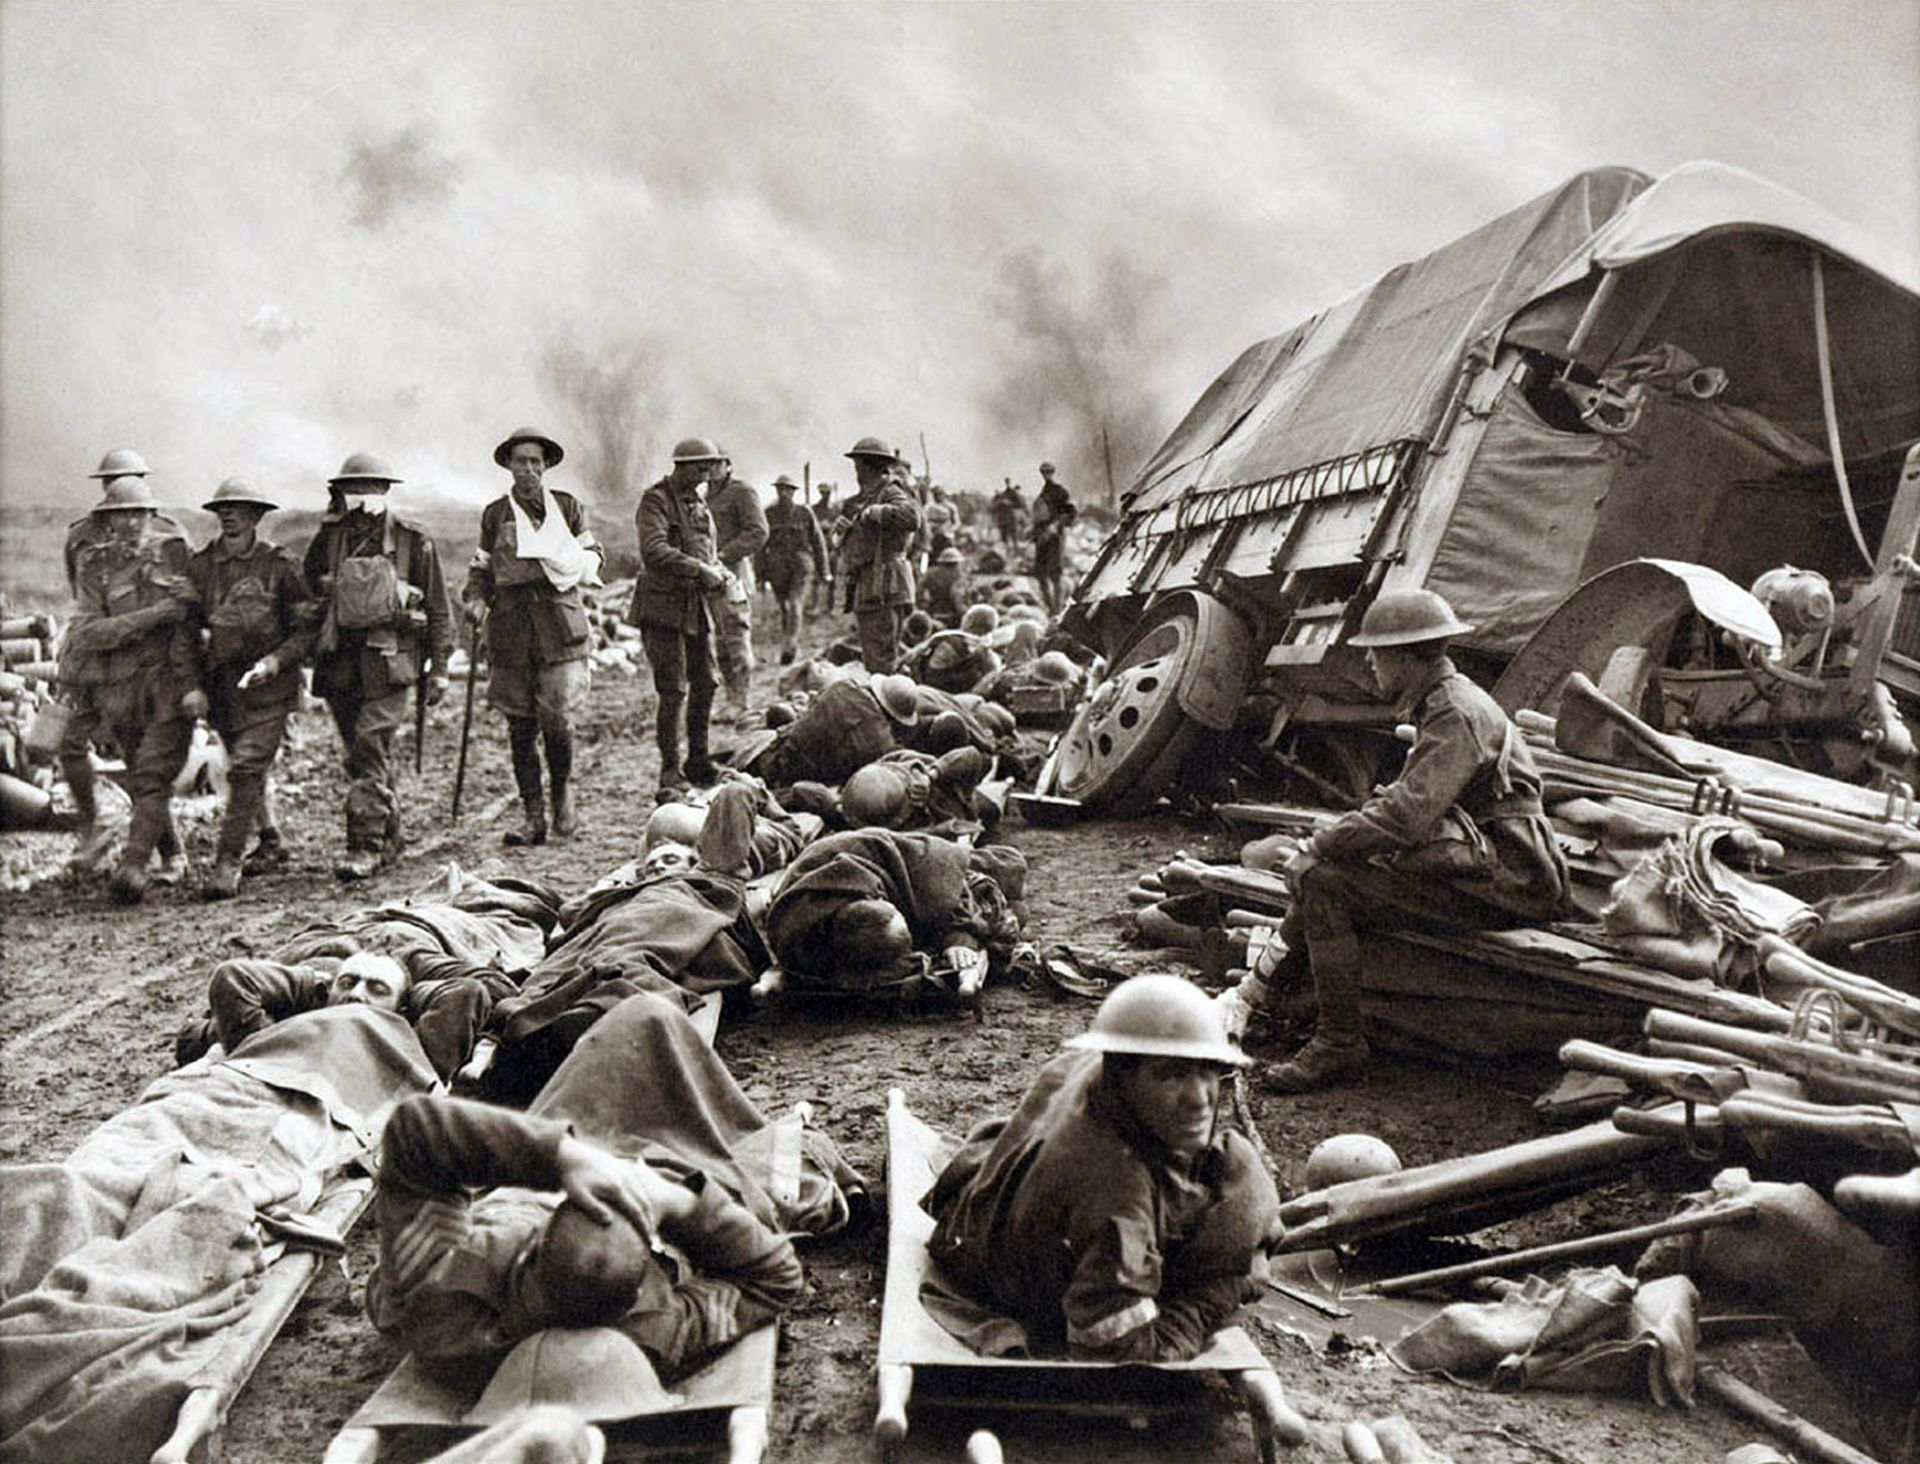 Battle_of_Menin_Road_-_wounded_at_side_of_the_road.jpg